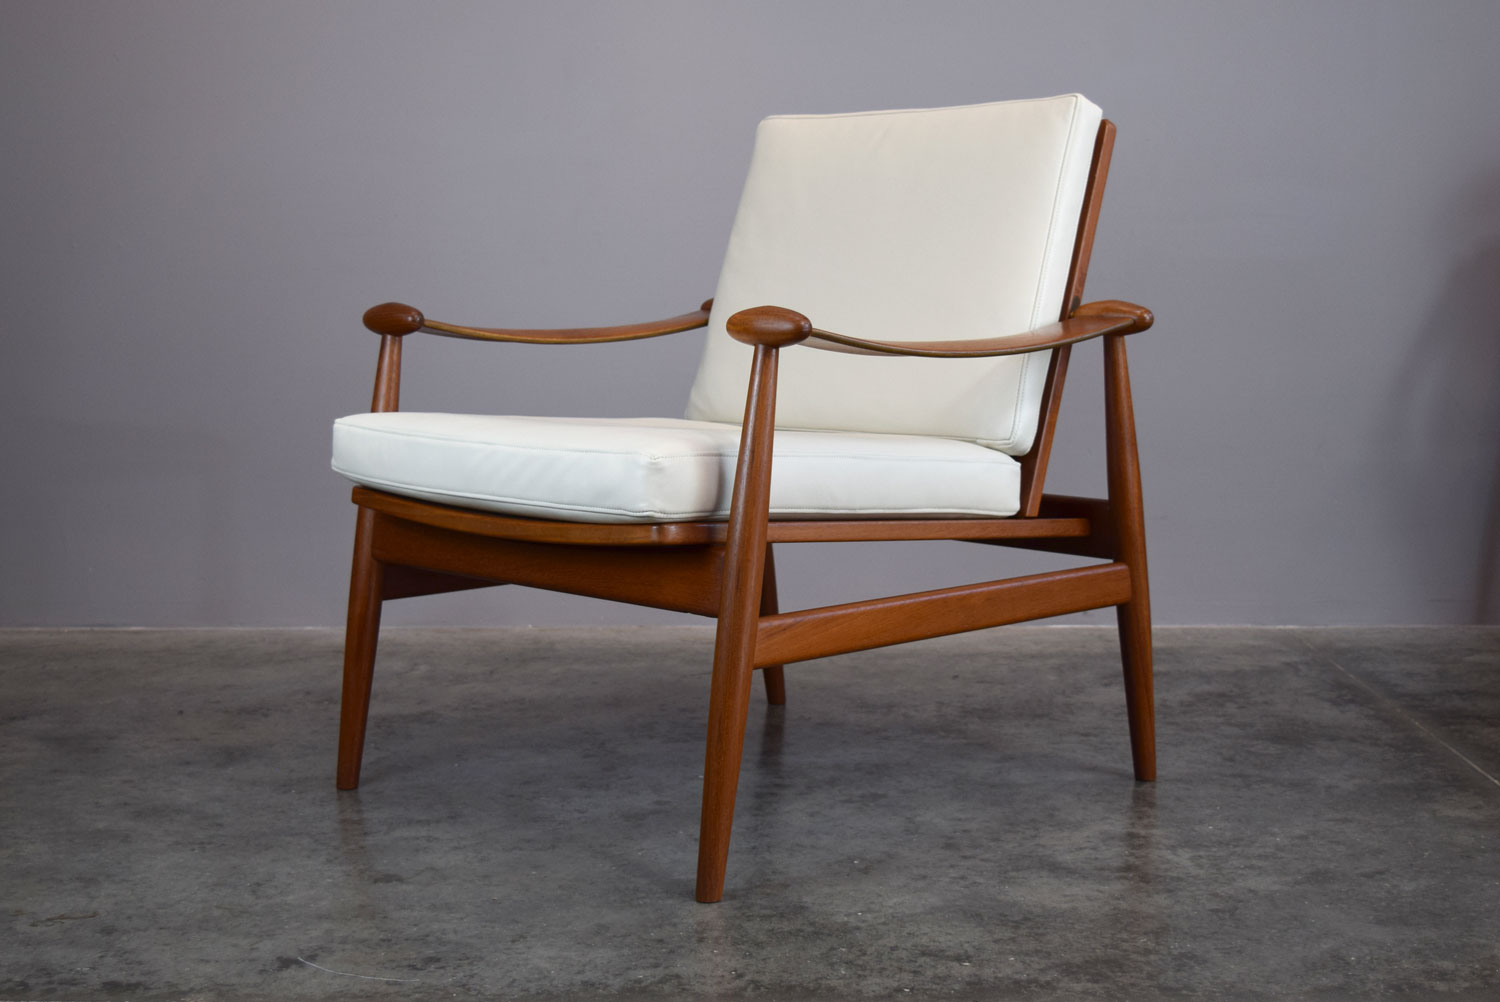 Spade Chair in Teak and Cream Leather